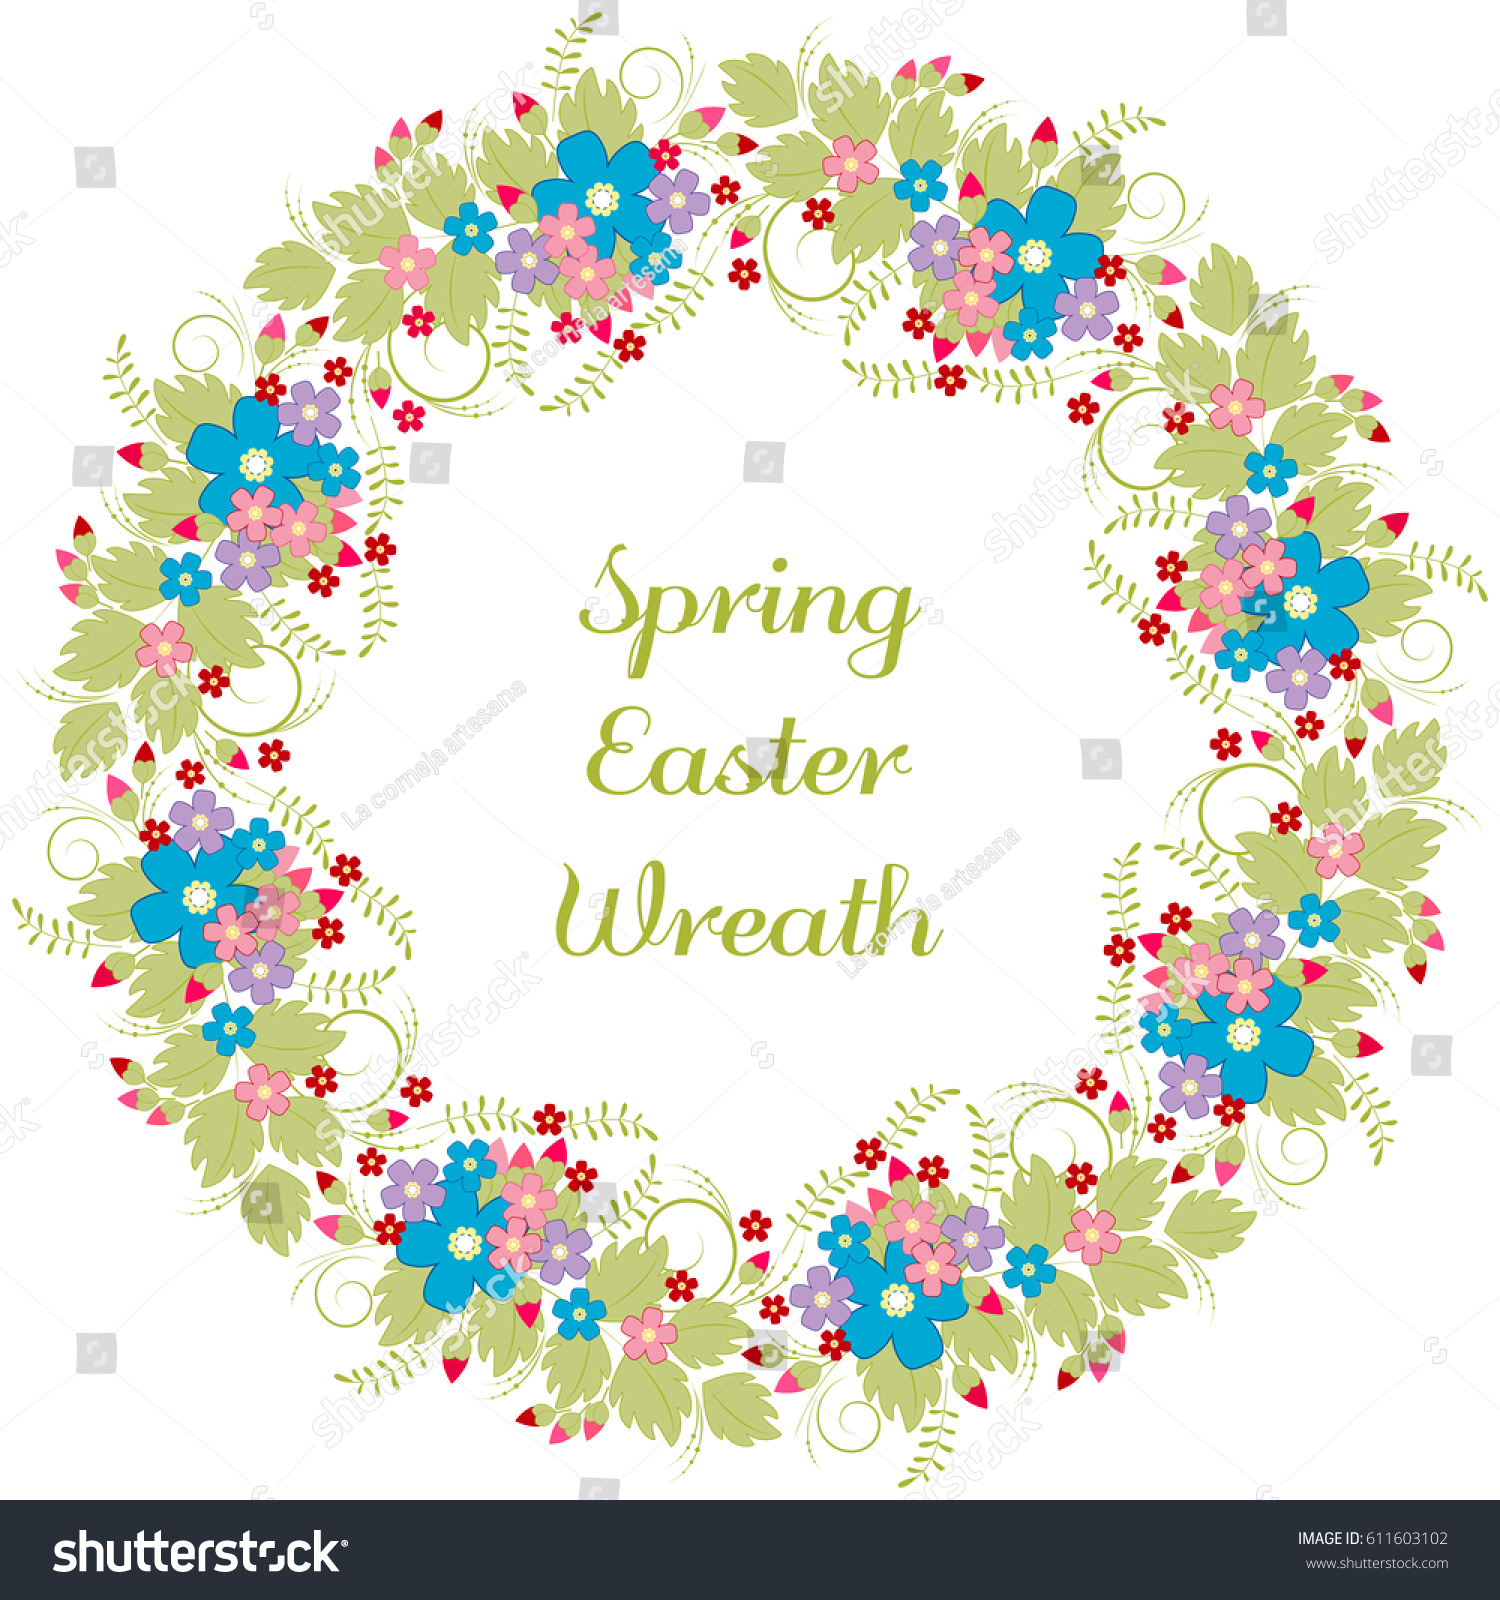 Easter Wreath Greeting Card Floral Frame Stock Vector Royalty Free